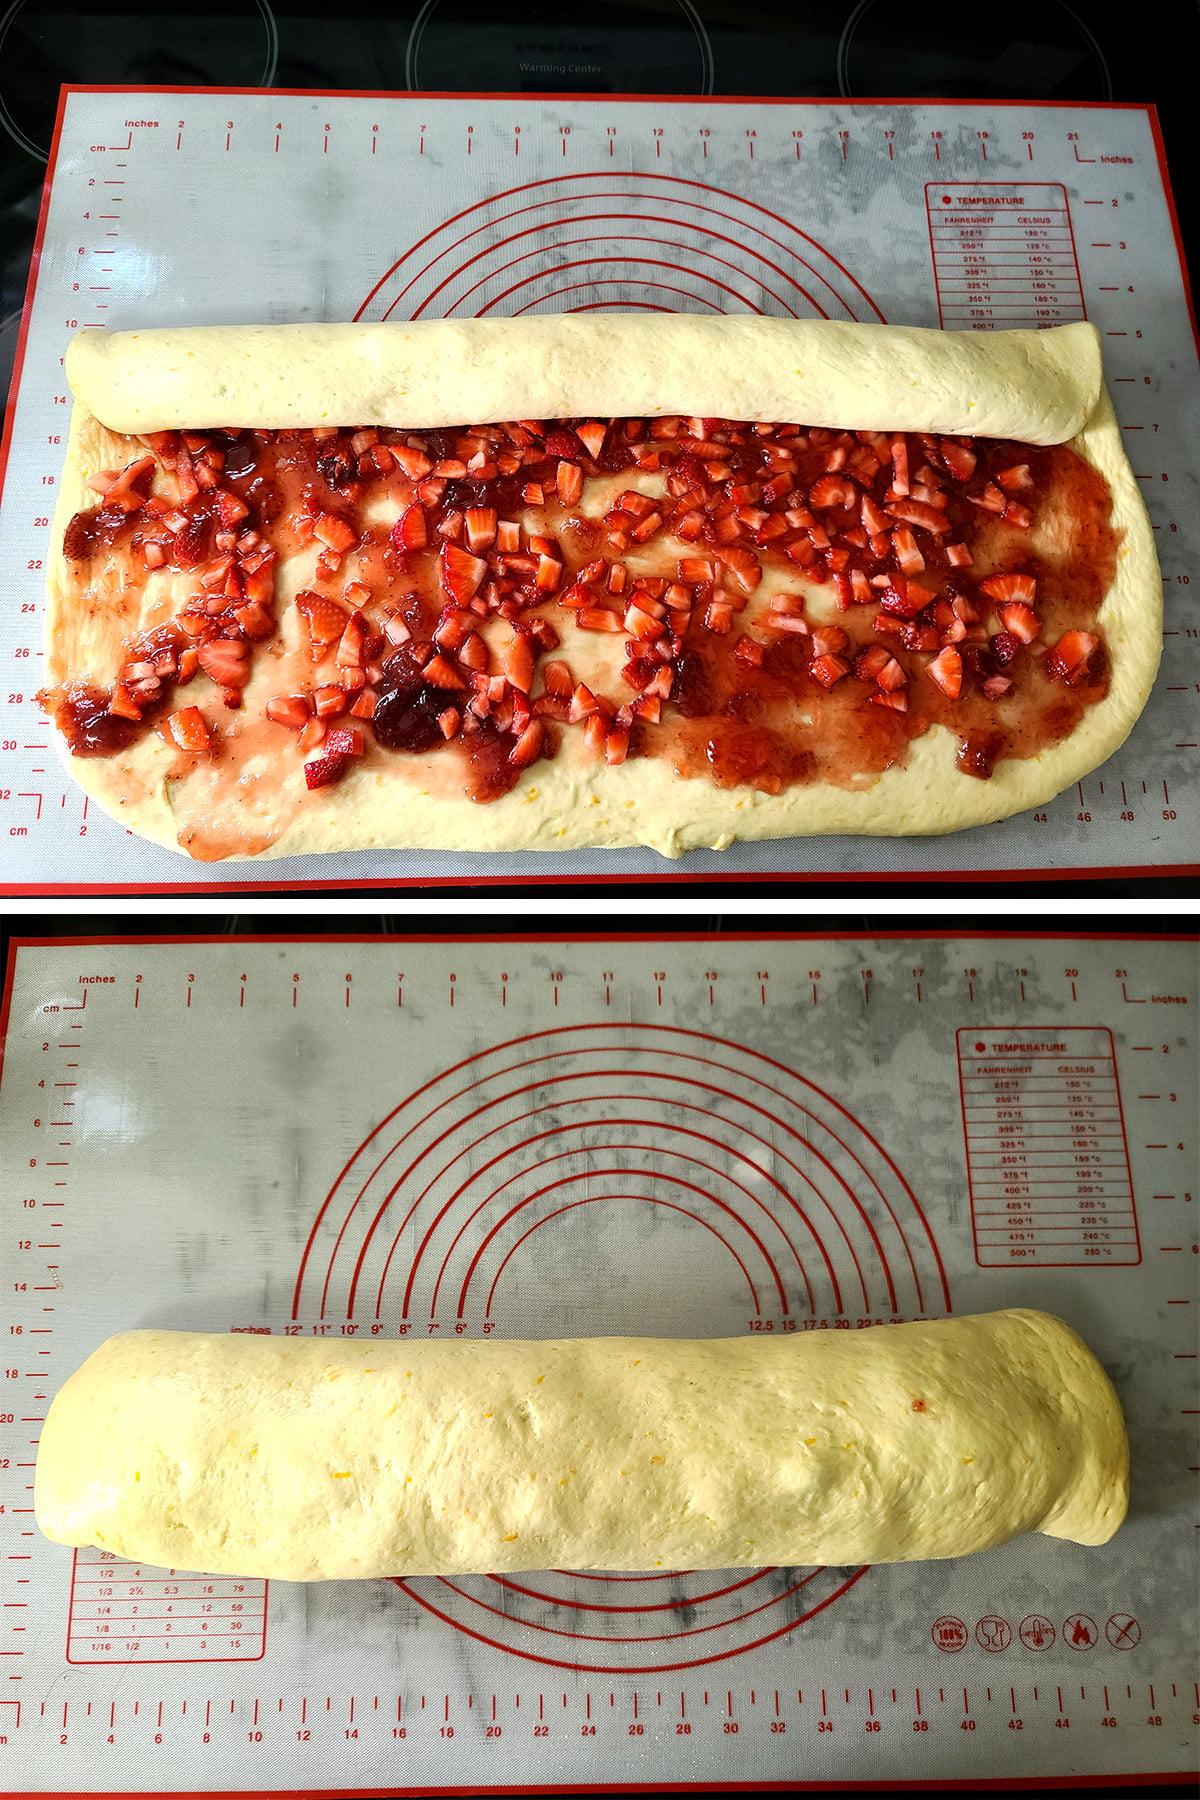 A two part compilation image showing the strawberry roll dough being rolled up into a large log.